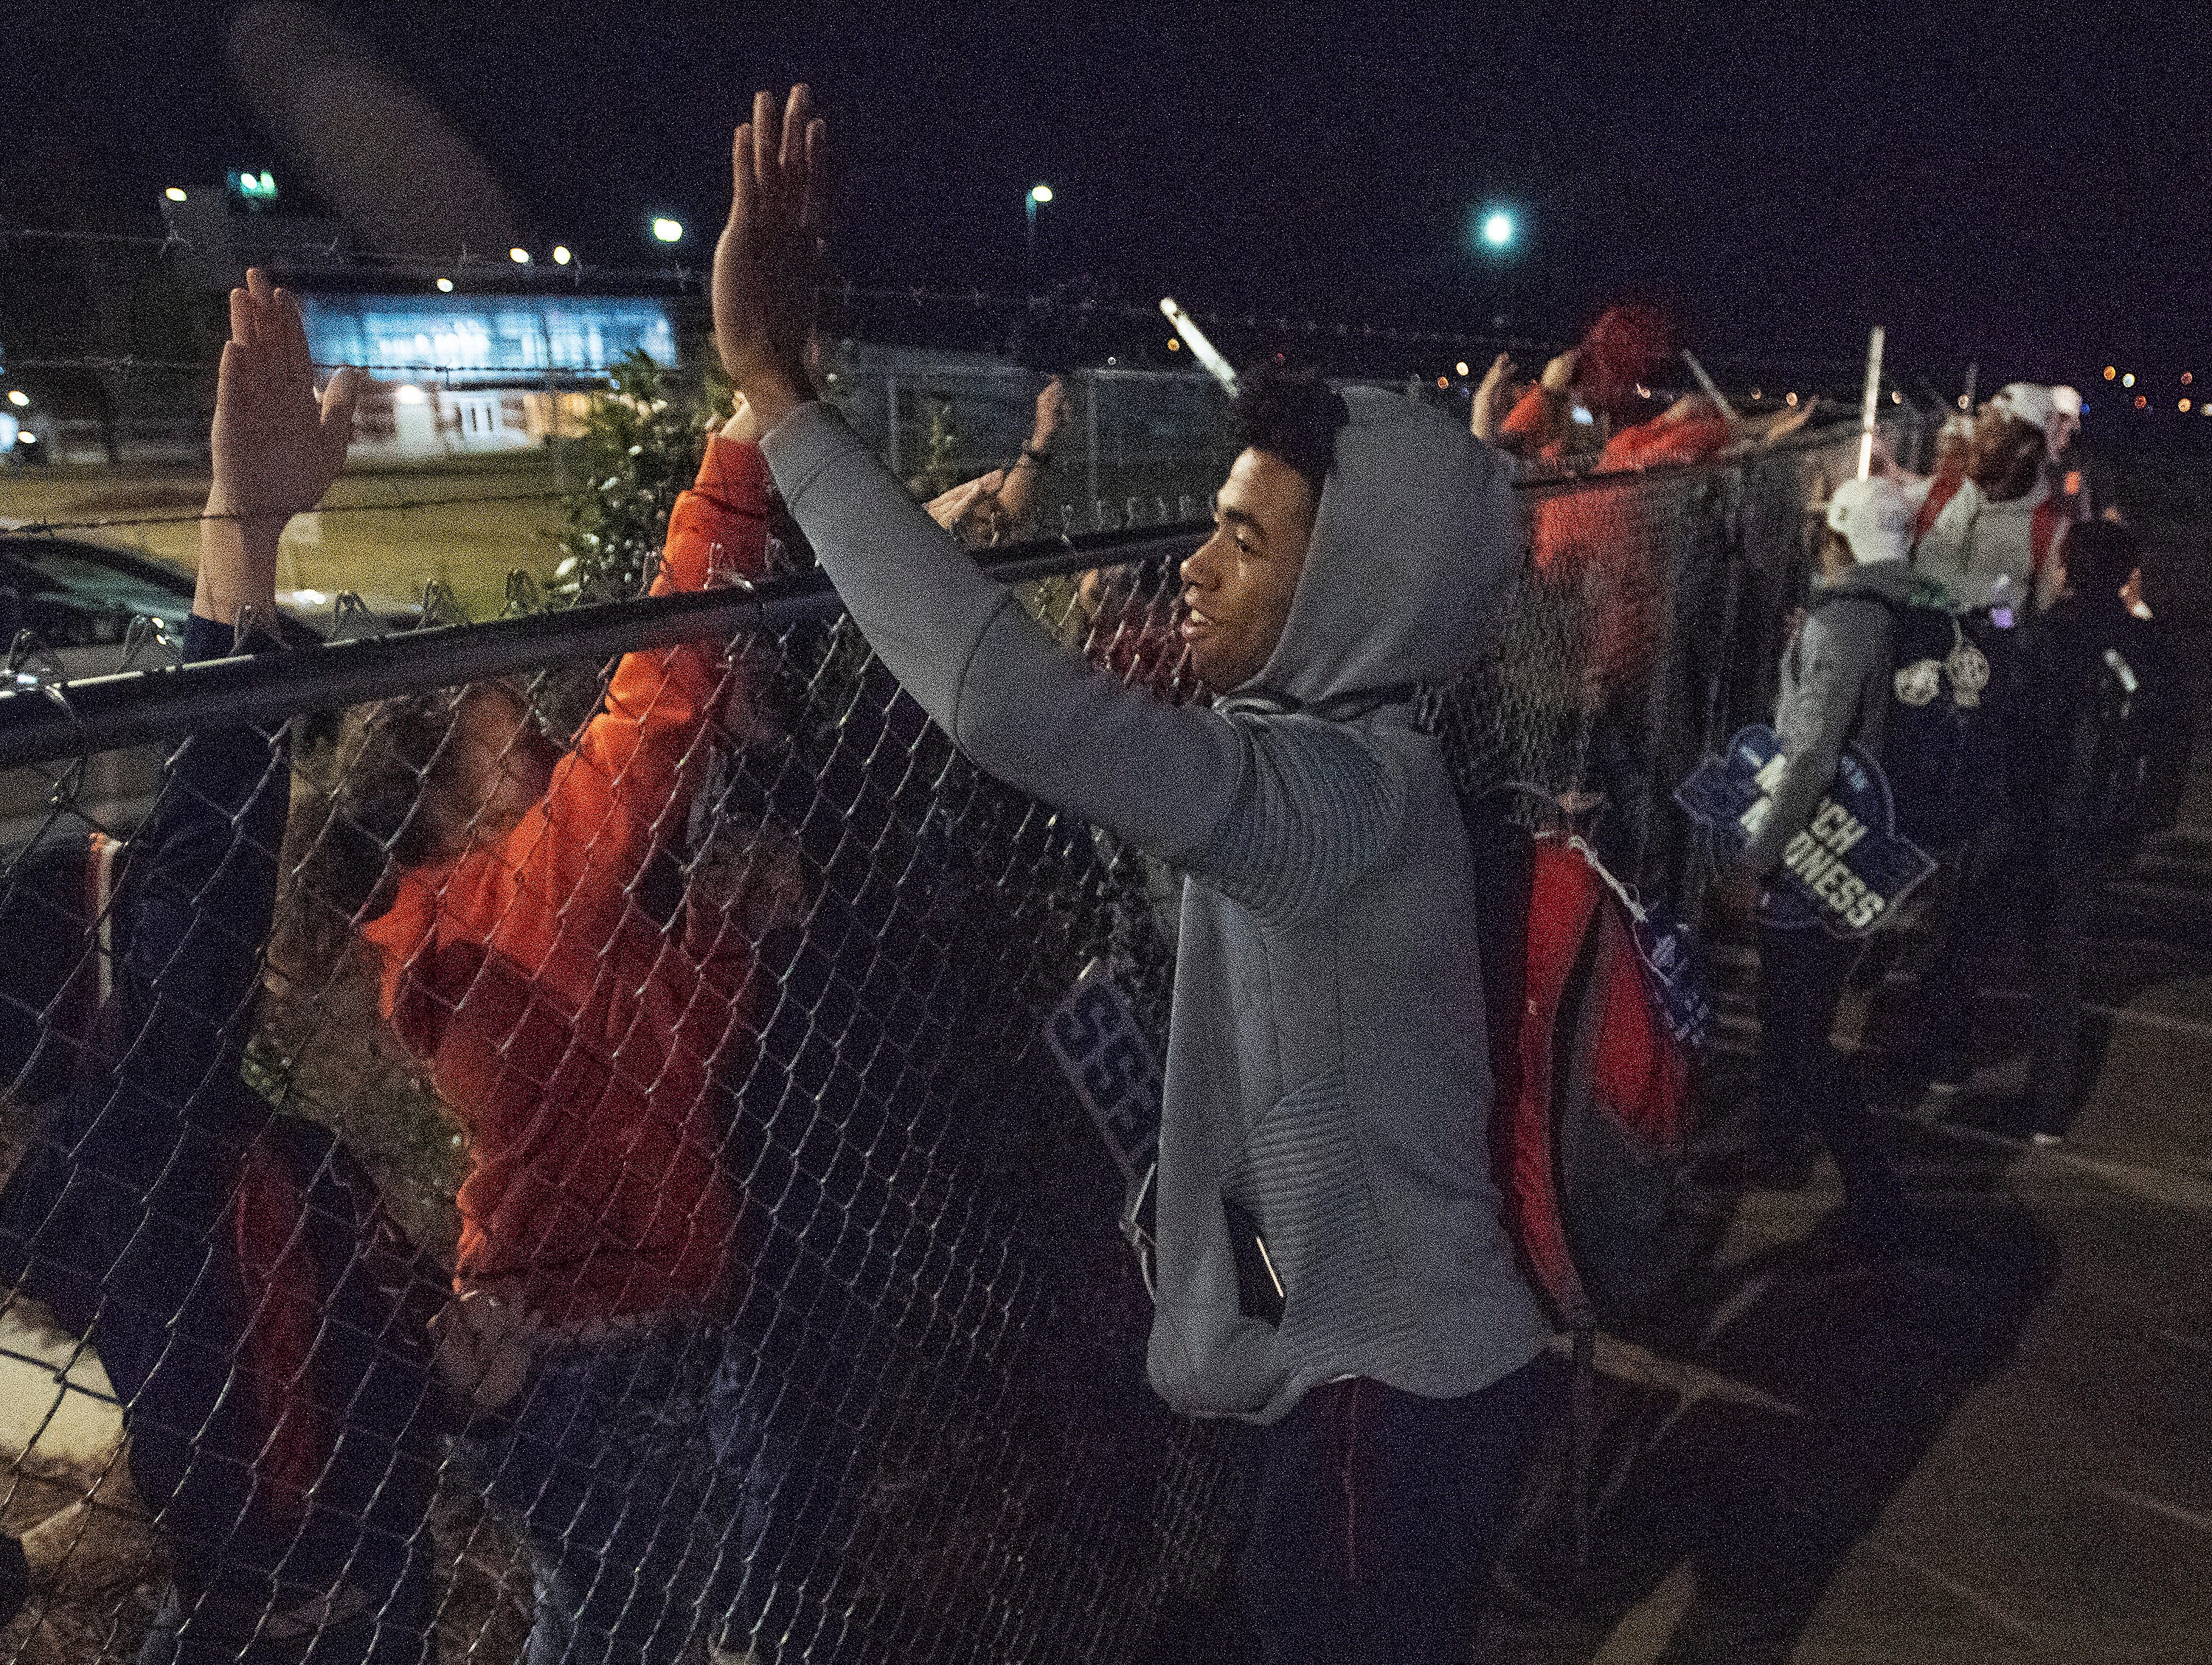 Players greet fans as the Auburn men's basketball team arrives at the Montgomery, Ala., airport on Sunday evening March 31, 2019 after defeating Kentucky in Kansas City to advance to the NCAA Basketball Final Four next weekend.